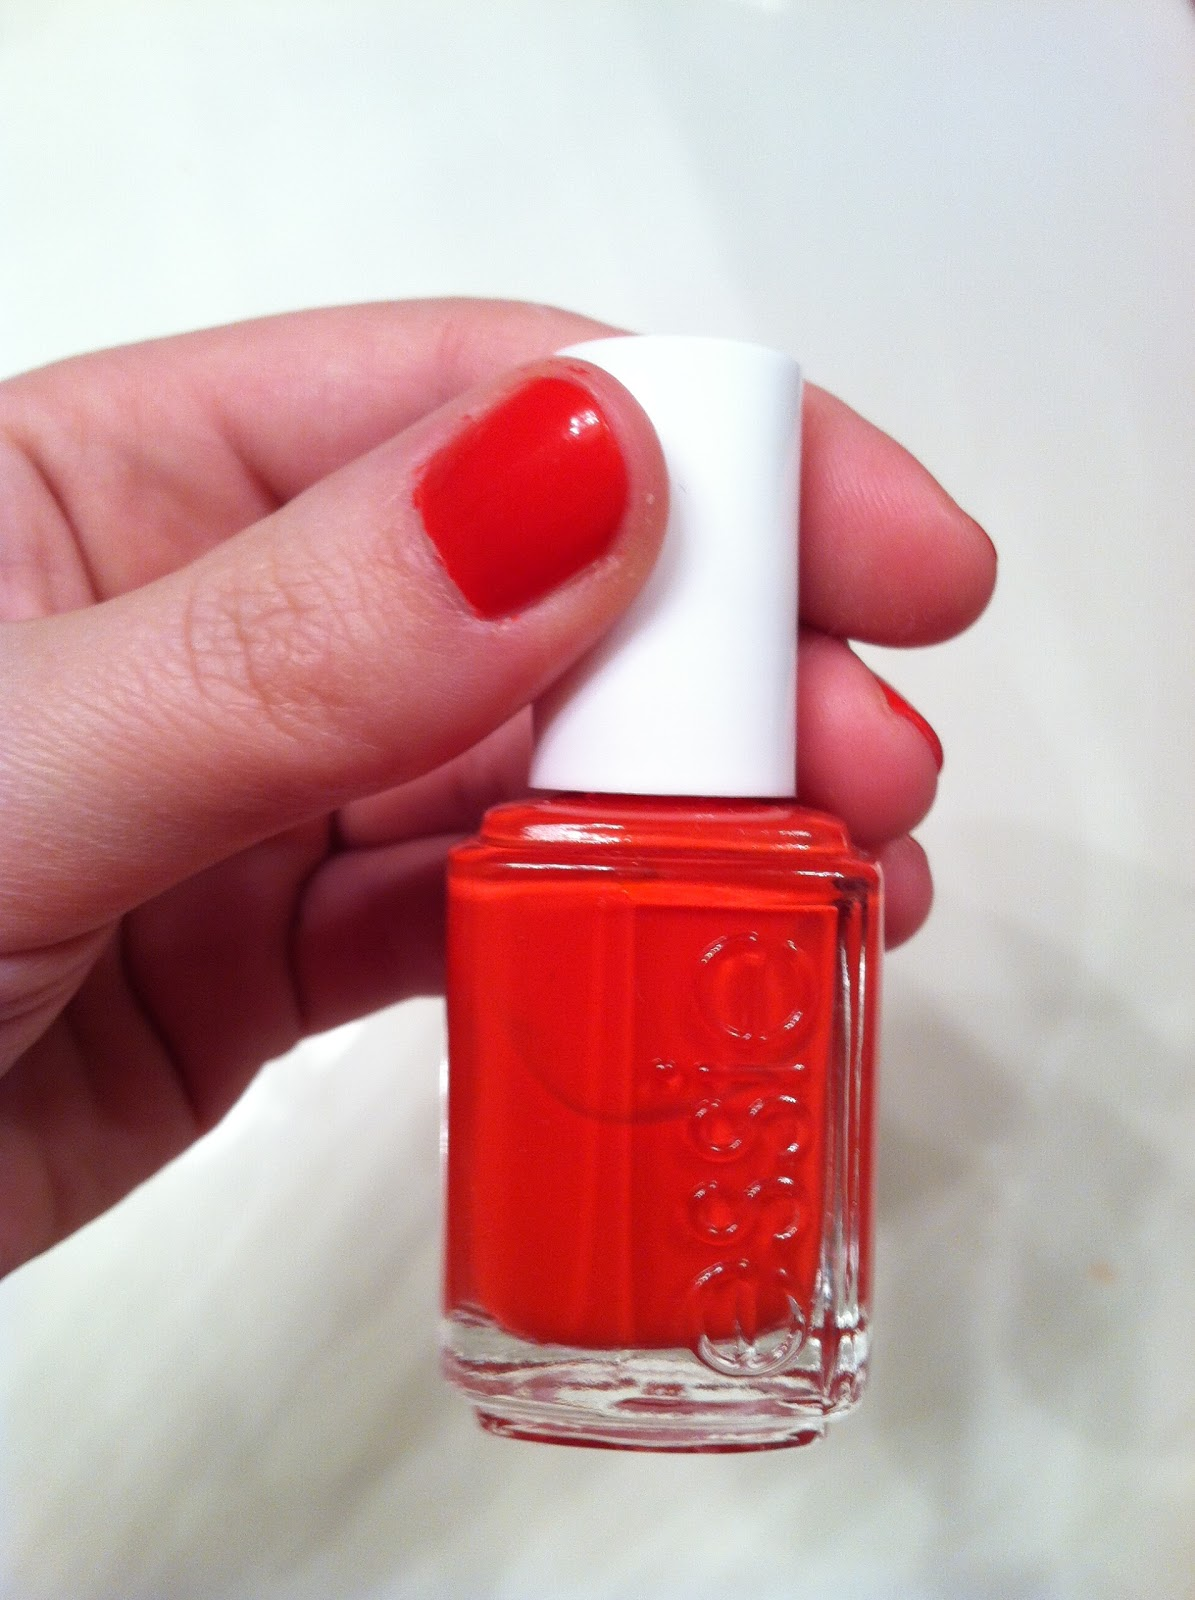 Today I M Wearing 1 Essie One Of A Kind Nail Polish